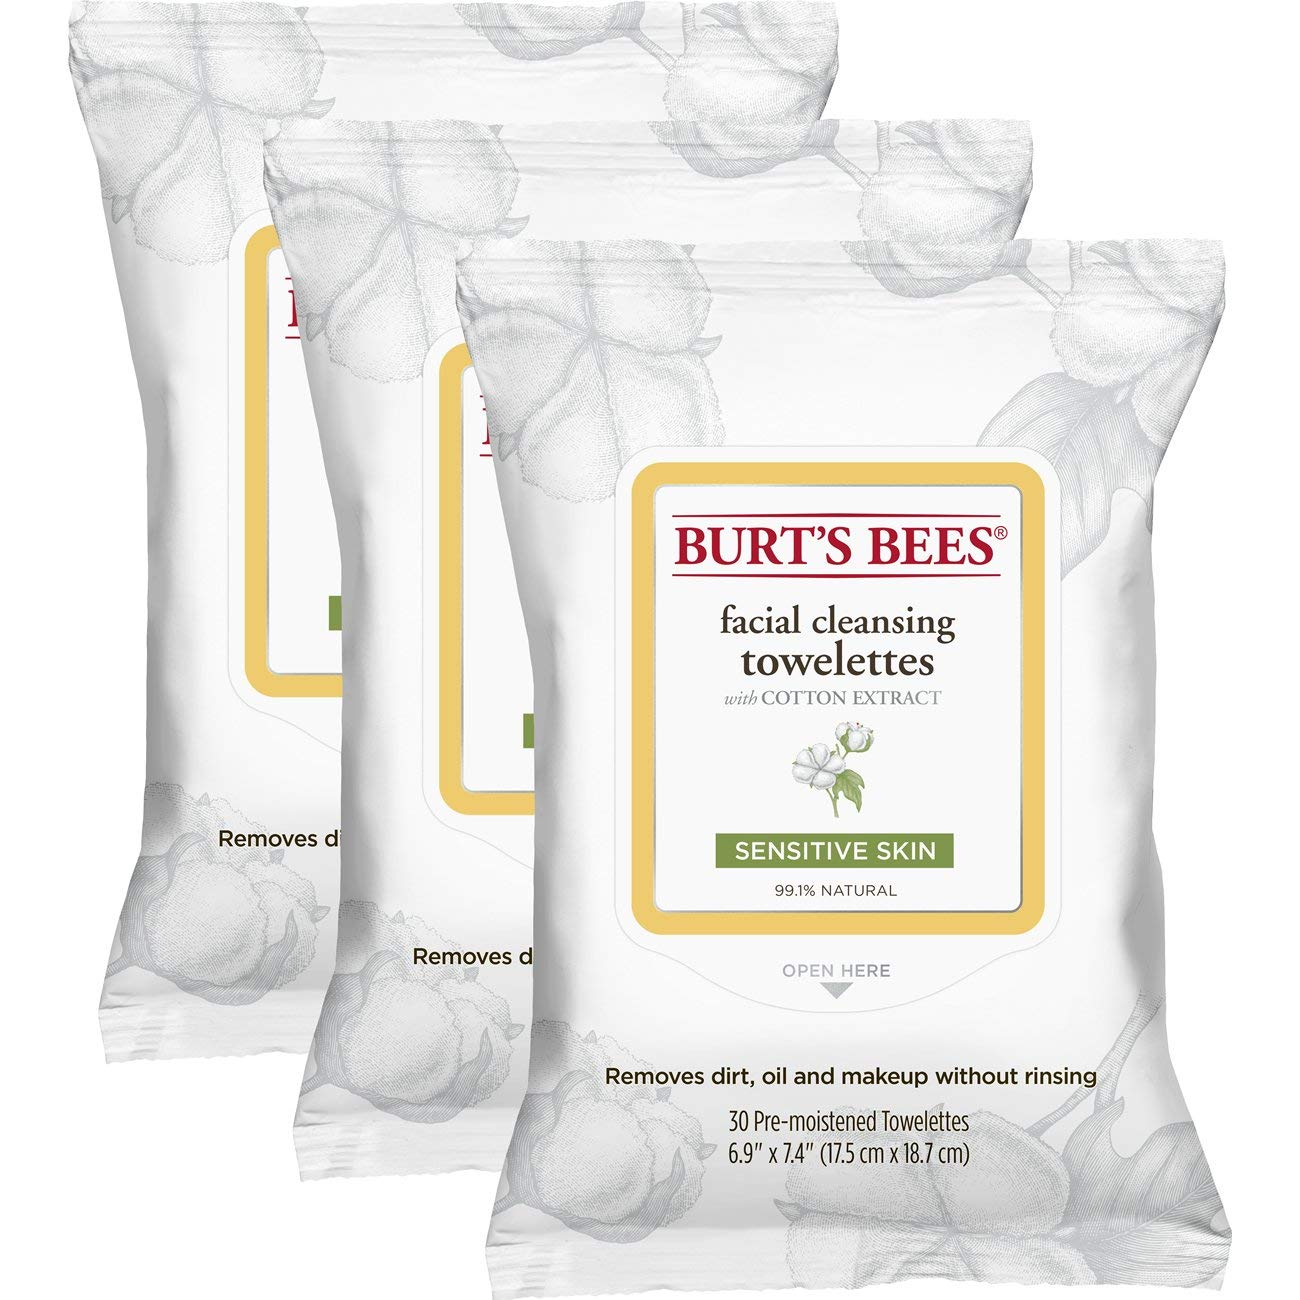 Burt's Bees Sensitive Facial Cleansing Towelettes with Cotton Extract for Sensitive Skin  - 30 Count (Pack of 3) by Burt's Bees